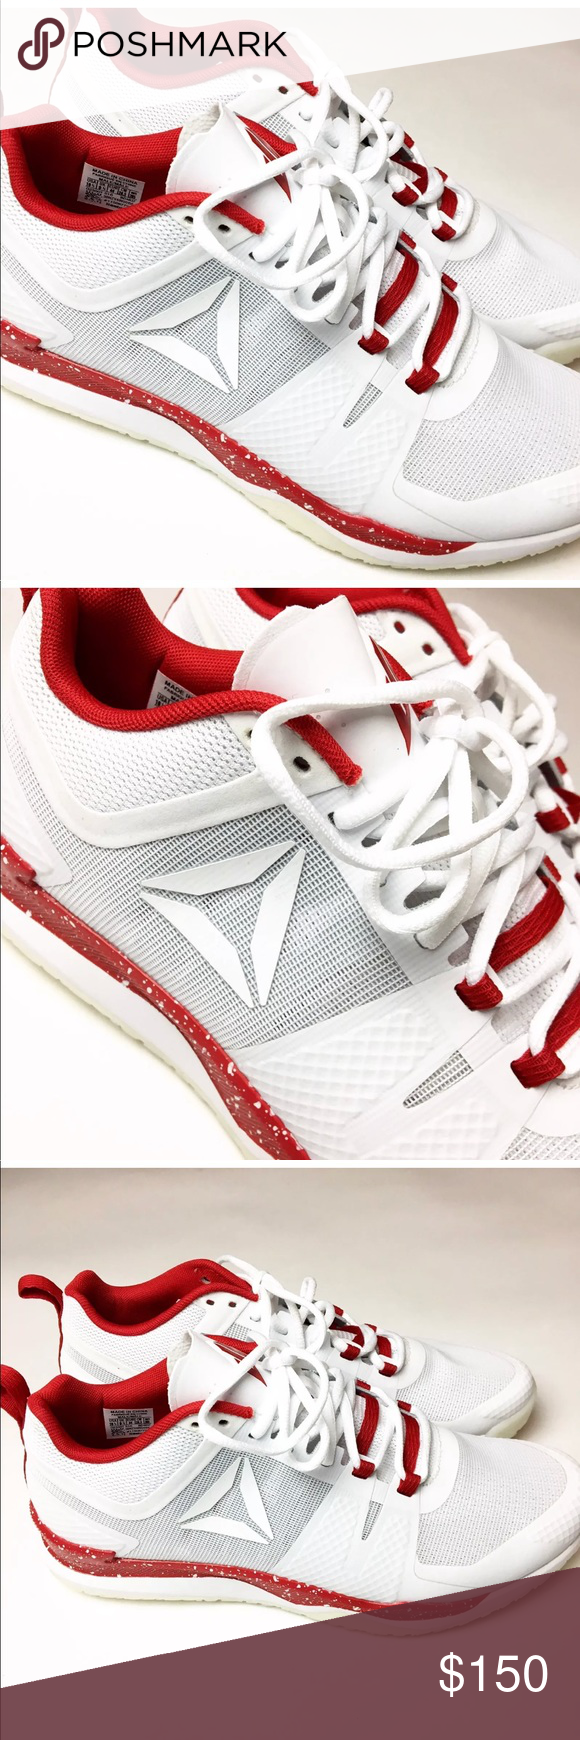 Reebok JJ 1 Watt Red Skull White Training Sneaker NEW Reebok JJ 1 Watt  Men s Size 8 Red Skull White Training BD4837 Condition  New with Box 1c45155c2